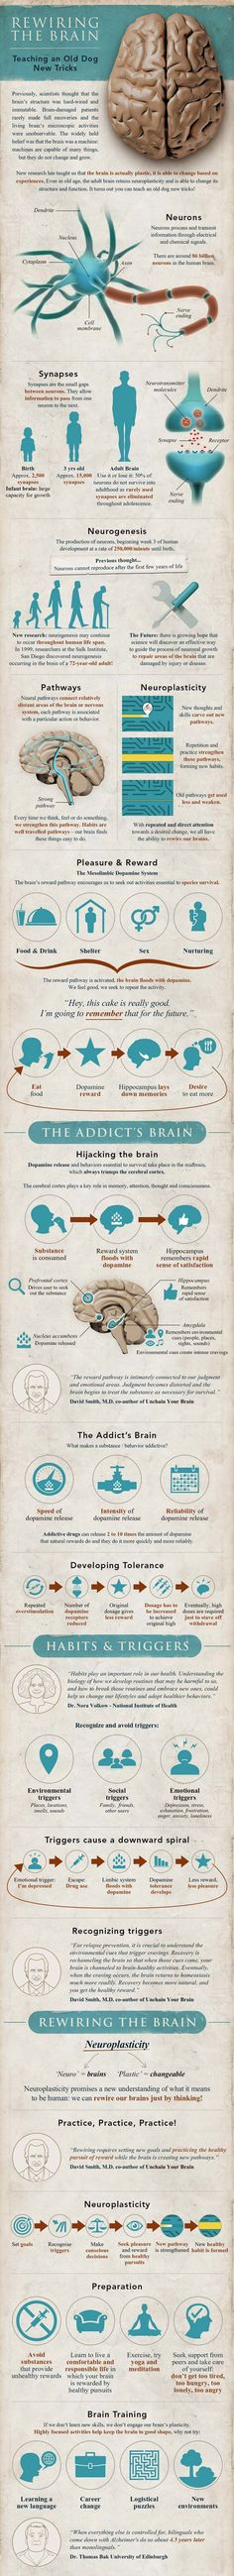 Infographic Introduction to Neuroplasticity and Cognitive Therapy ~ ~ Did you know you can rewire your brain? Neuroscientific breakthroughs are revealing fascinating new truths about how we can control our brains to create new positive neuropathways Brain Science, Science Education, Health Education, Life Science, Computer Science, Physical Education, Therapy Tools, Trauma Therapy, Art Therapy